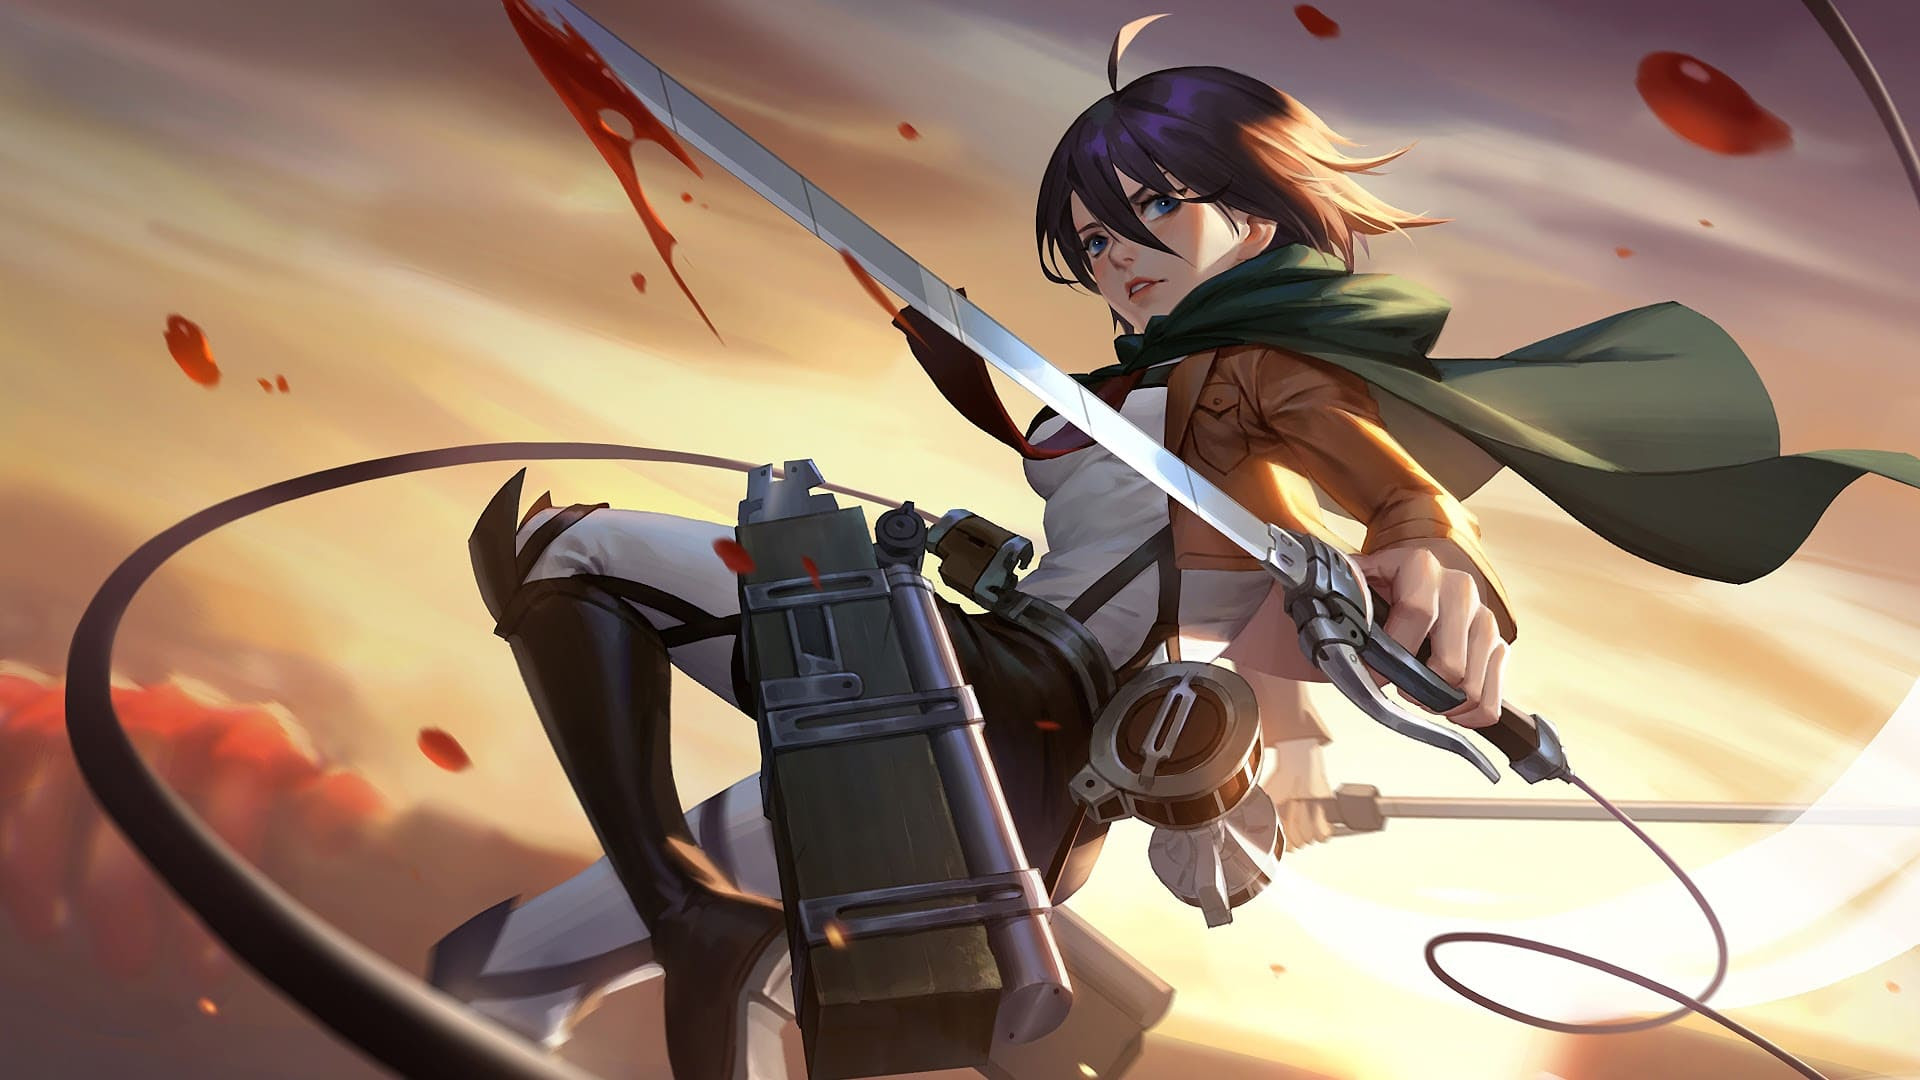 Top 95 Attack On Titan Wallpapers 4k Hd